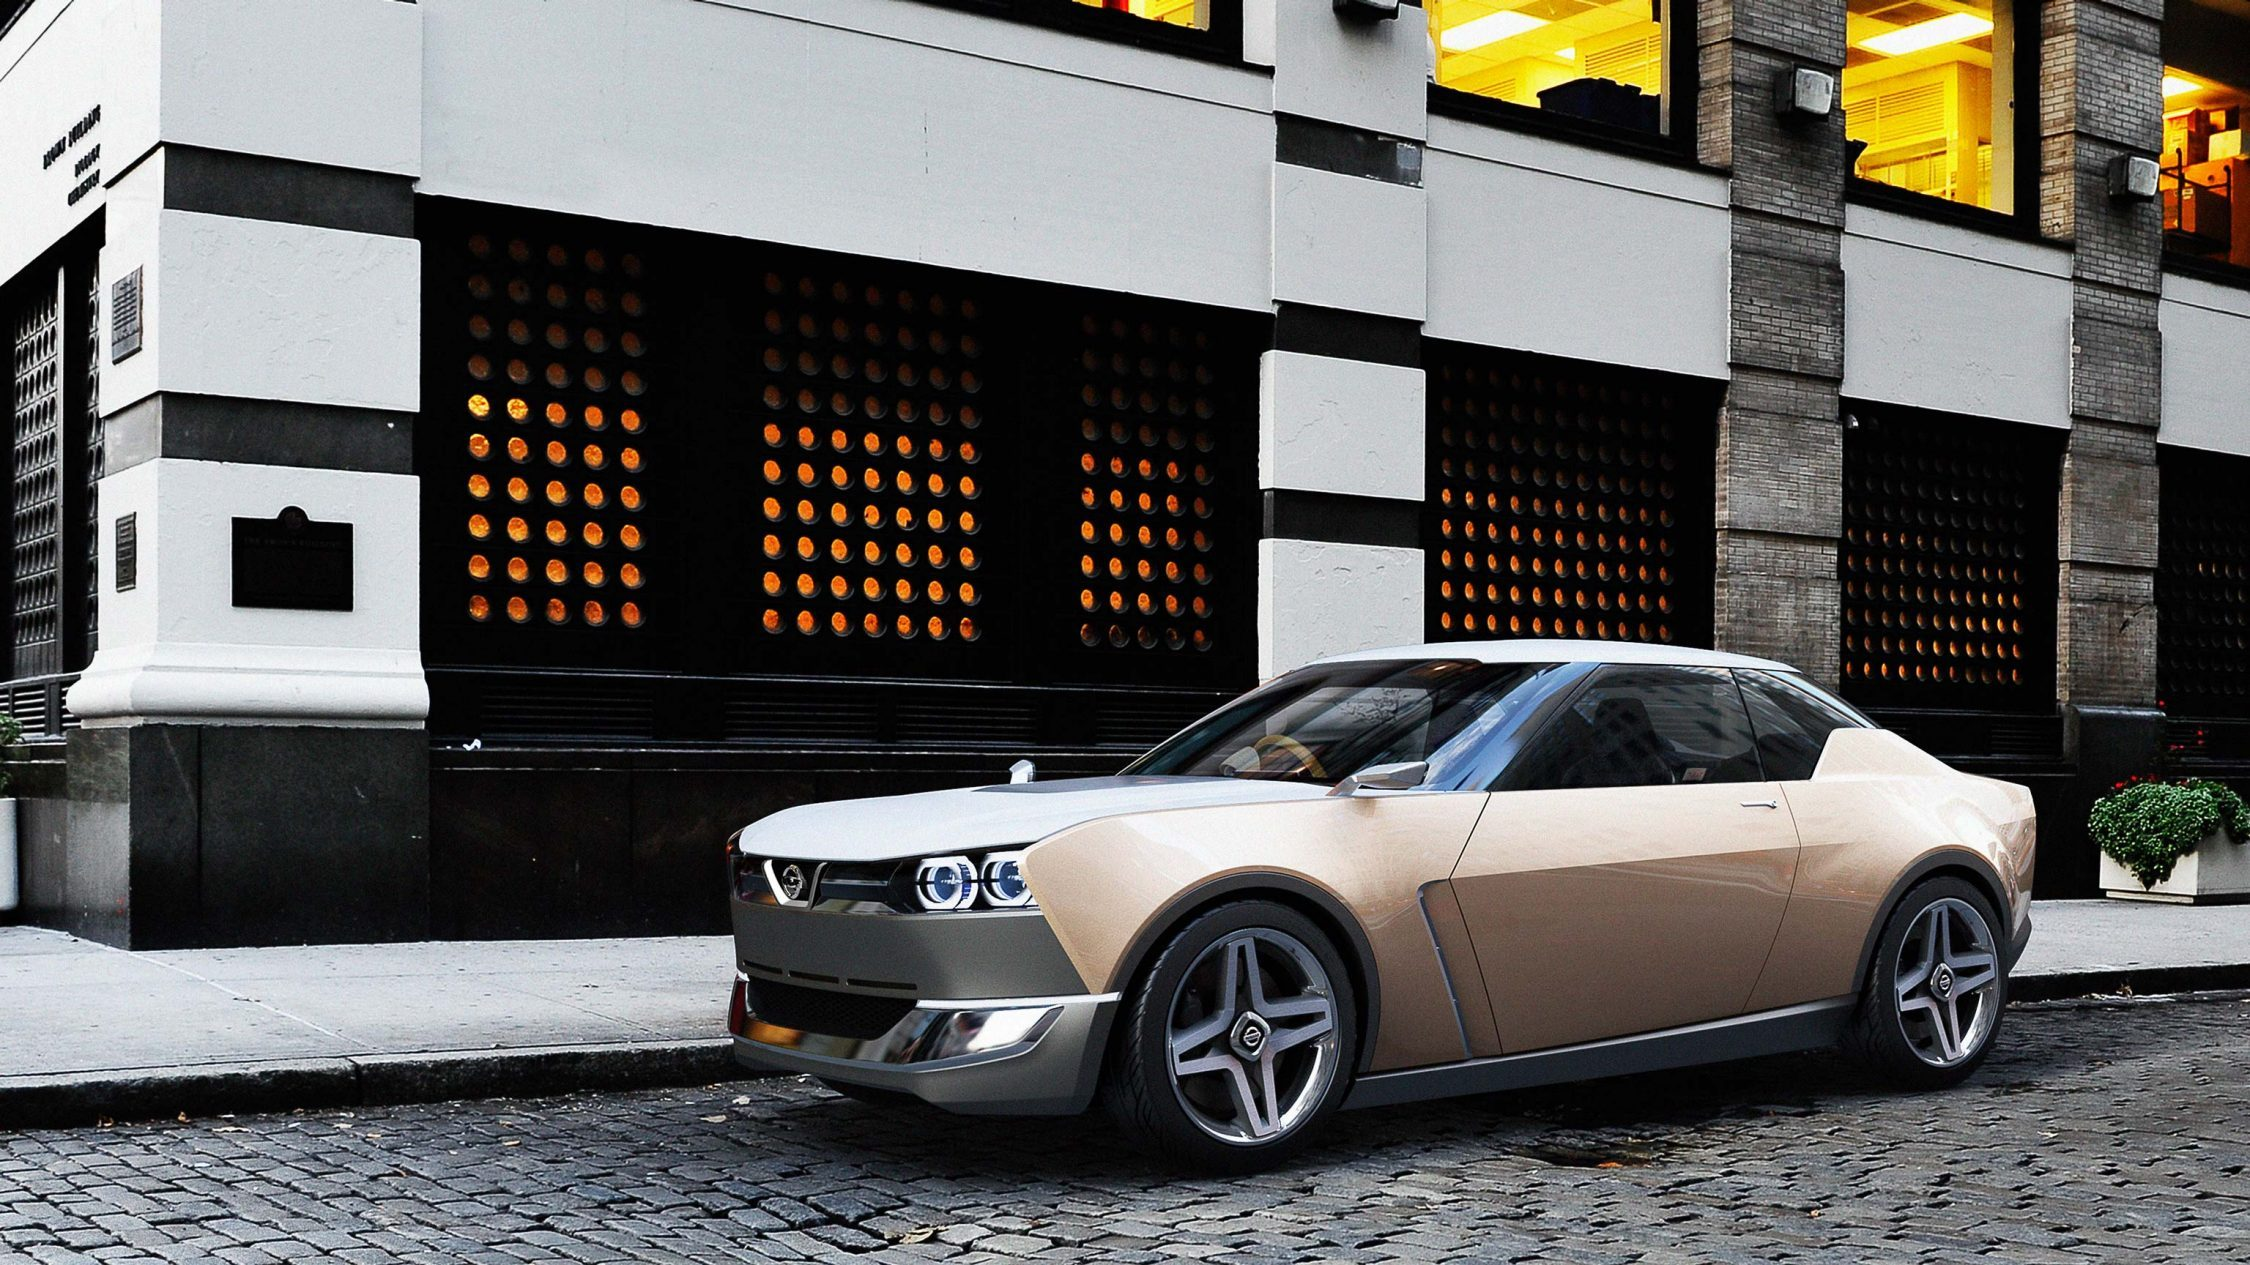 Nissan IDX Freeflow Concept. Gallery low 3/4 rear parked in city.